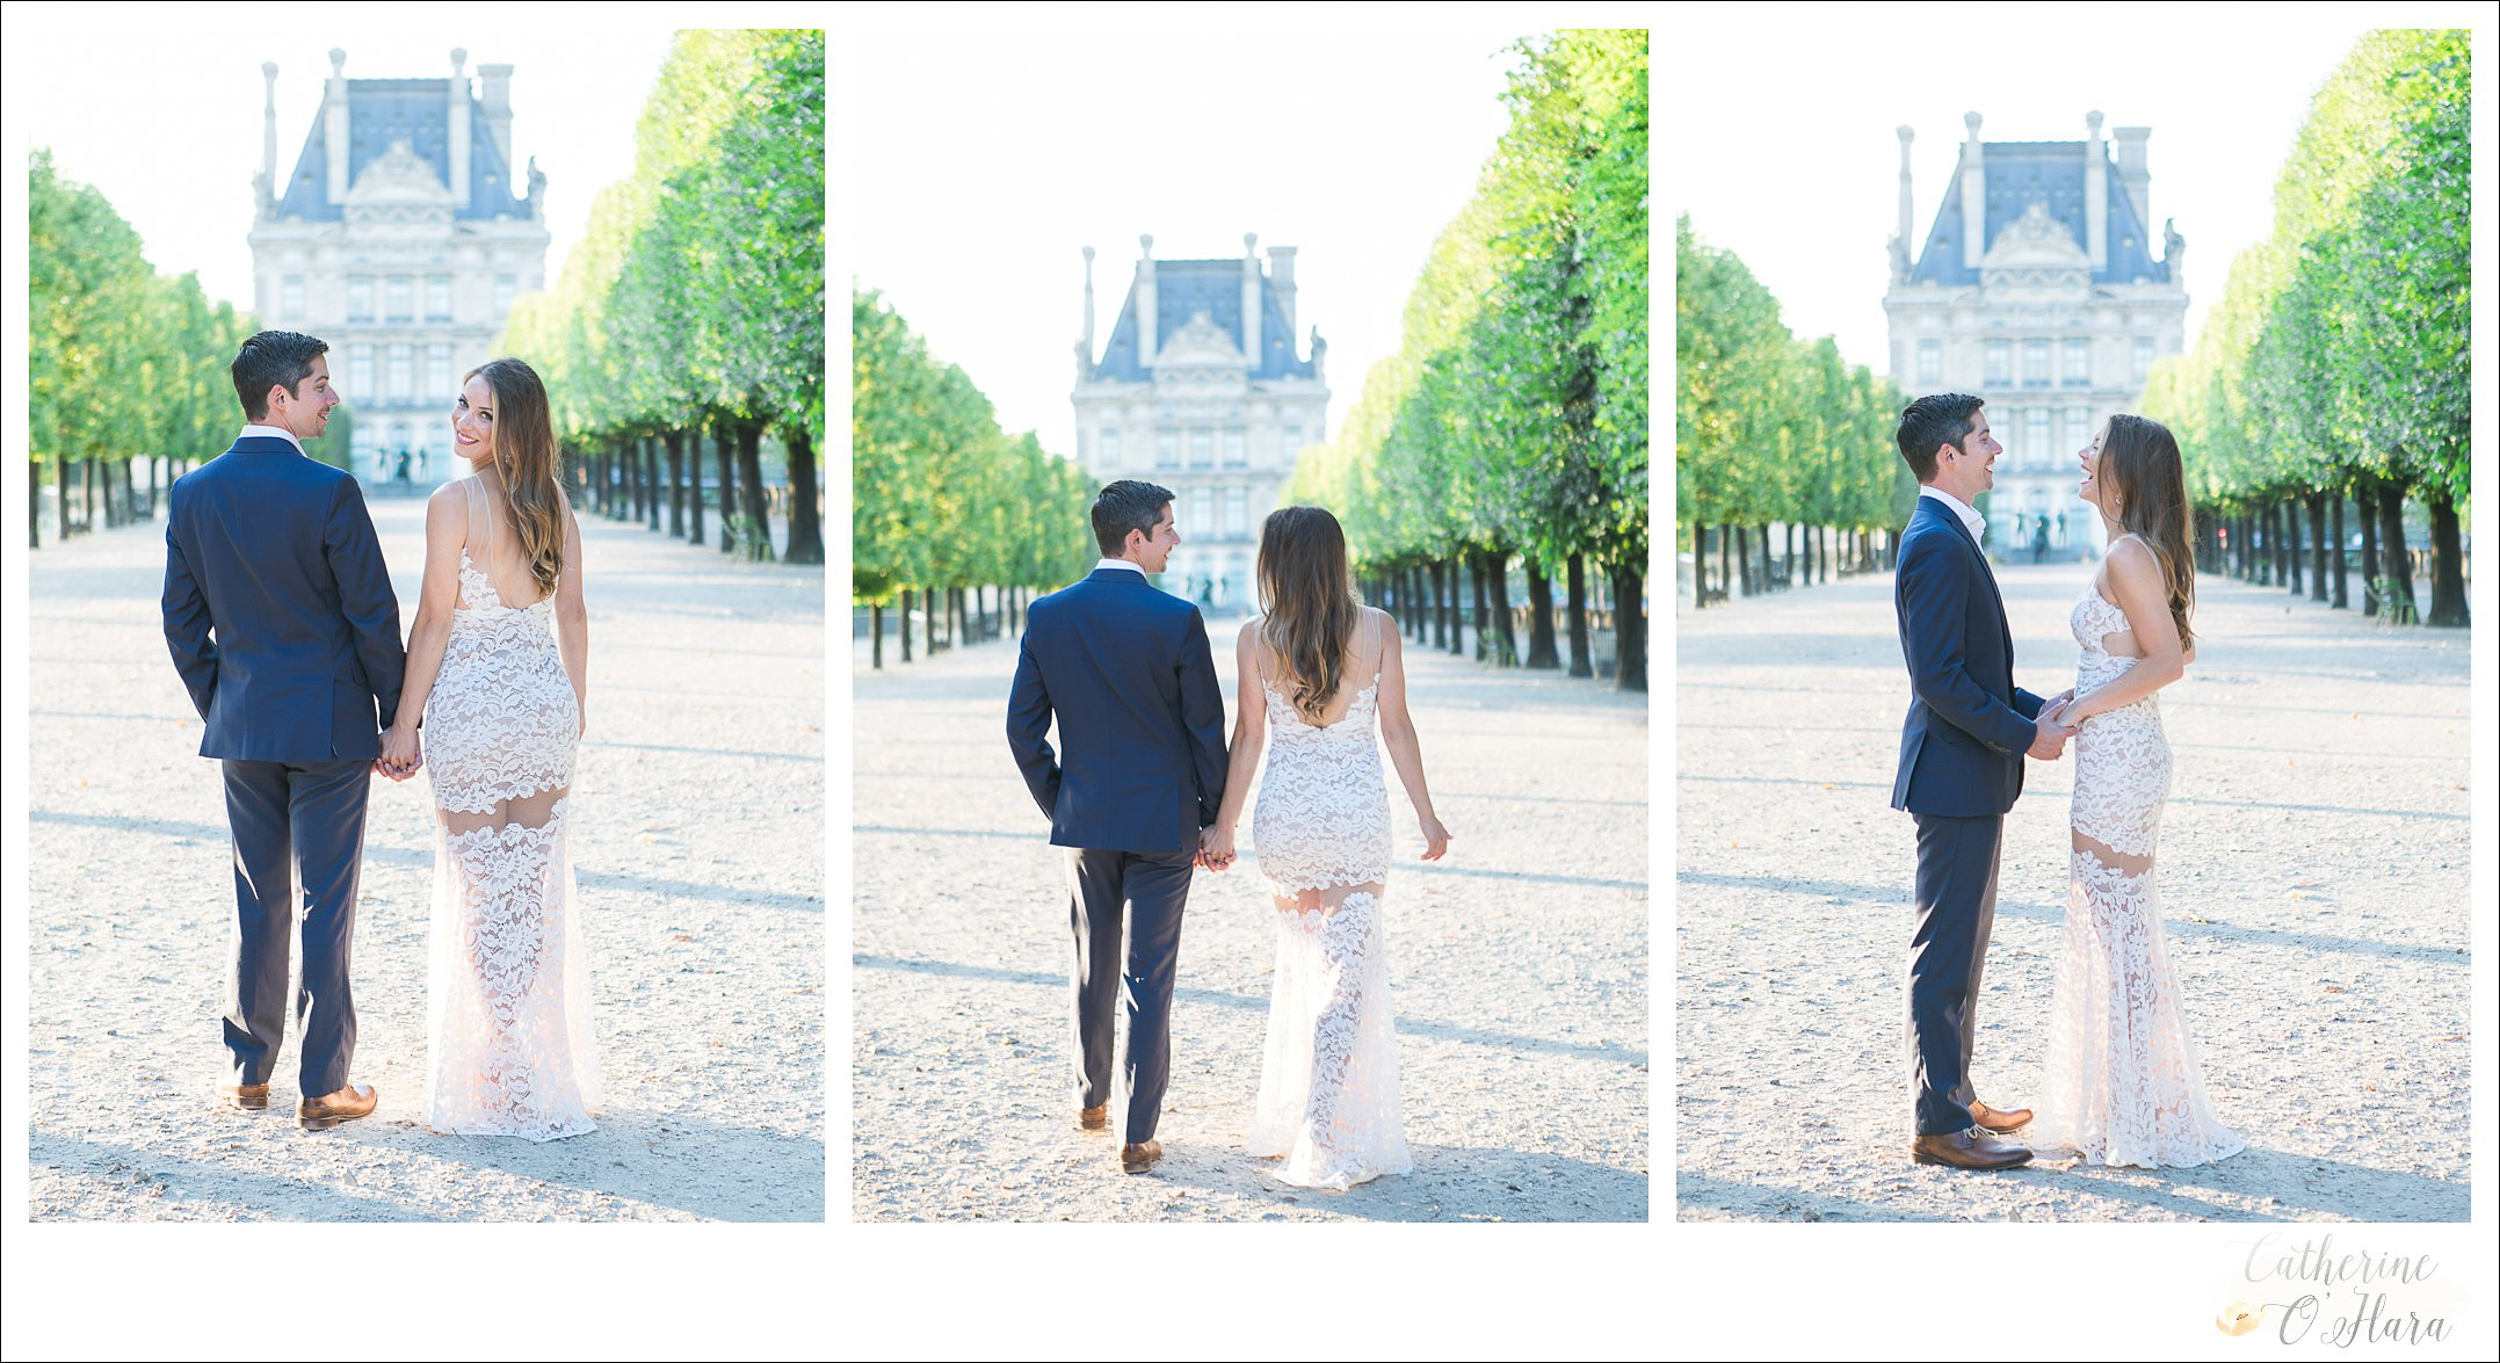 paris france engagement proposal photographer-16.jpg